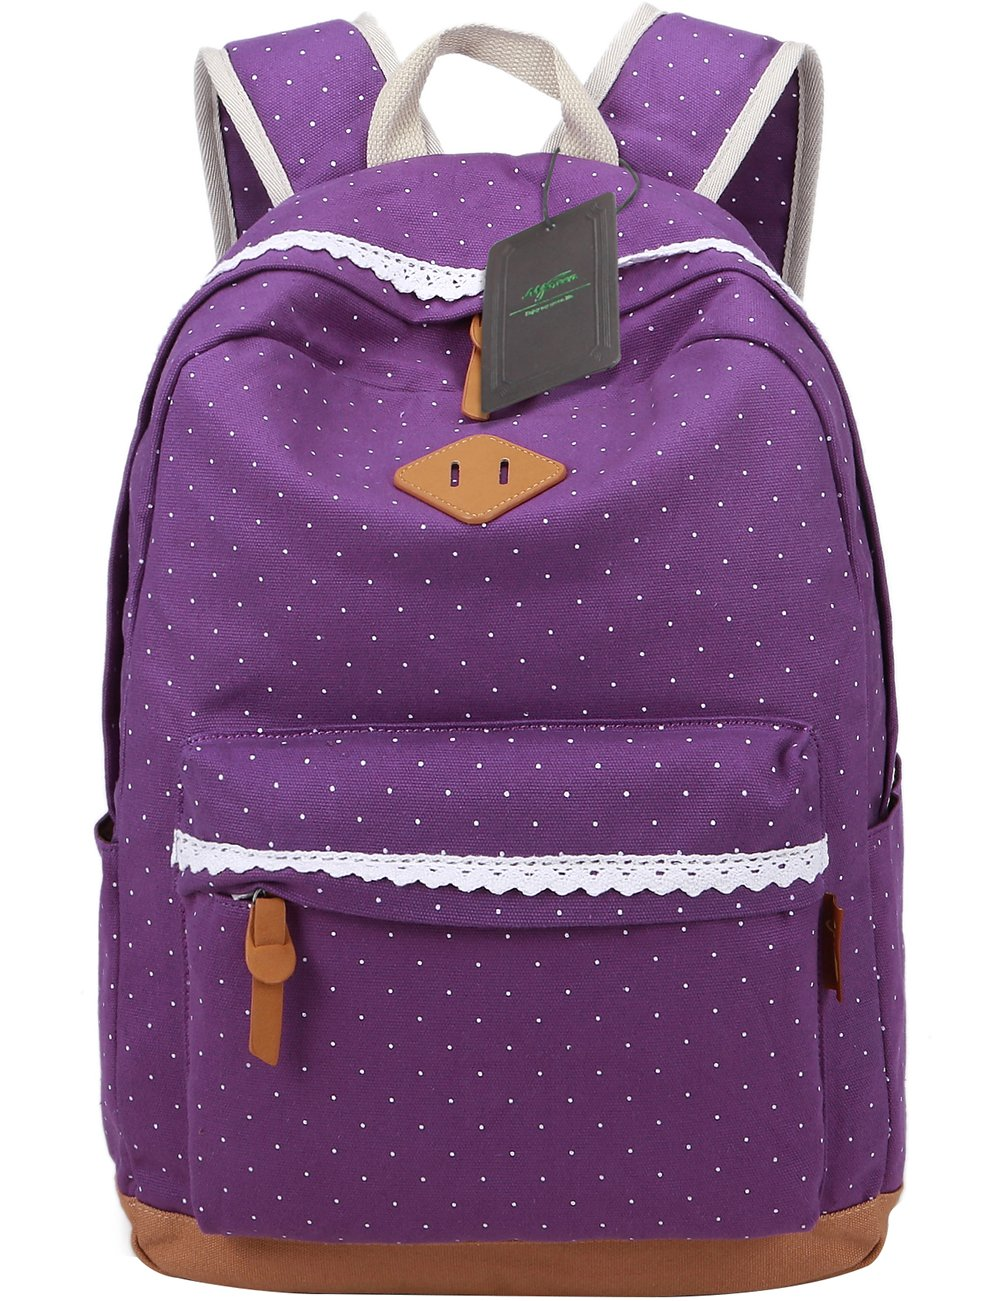 Mygreen Casual Lightweight Print Backpack for Girls and Women School Bags Rucksack Cute Floral Dot Bookbags Purple